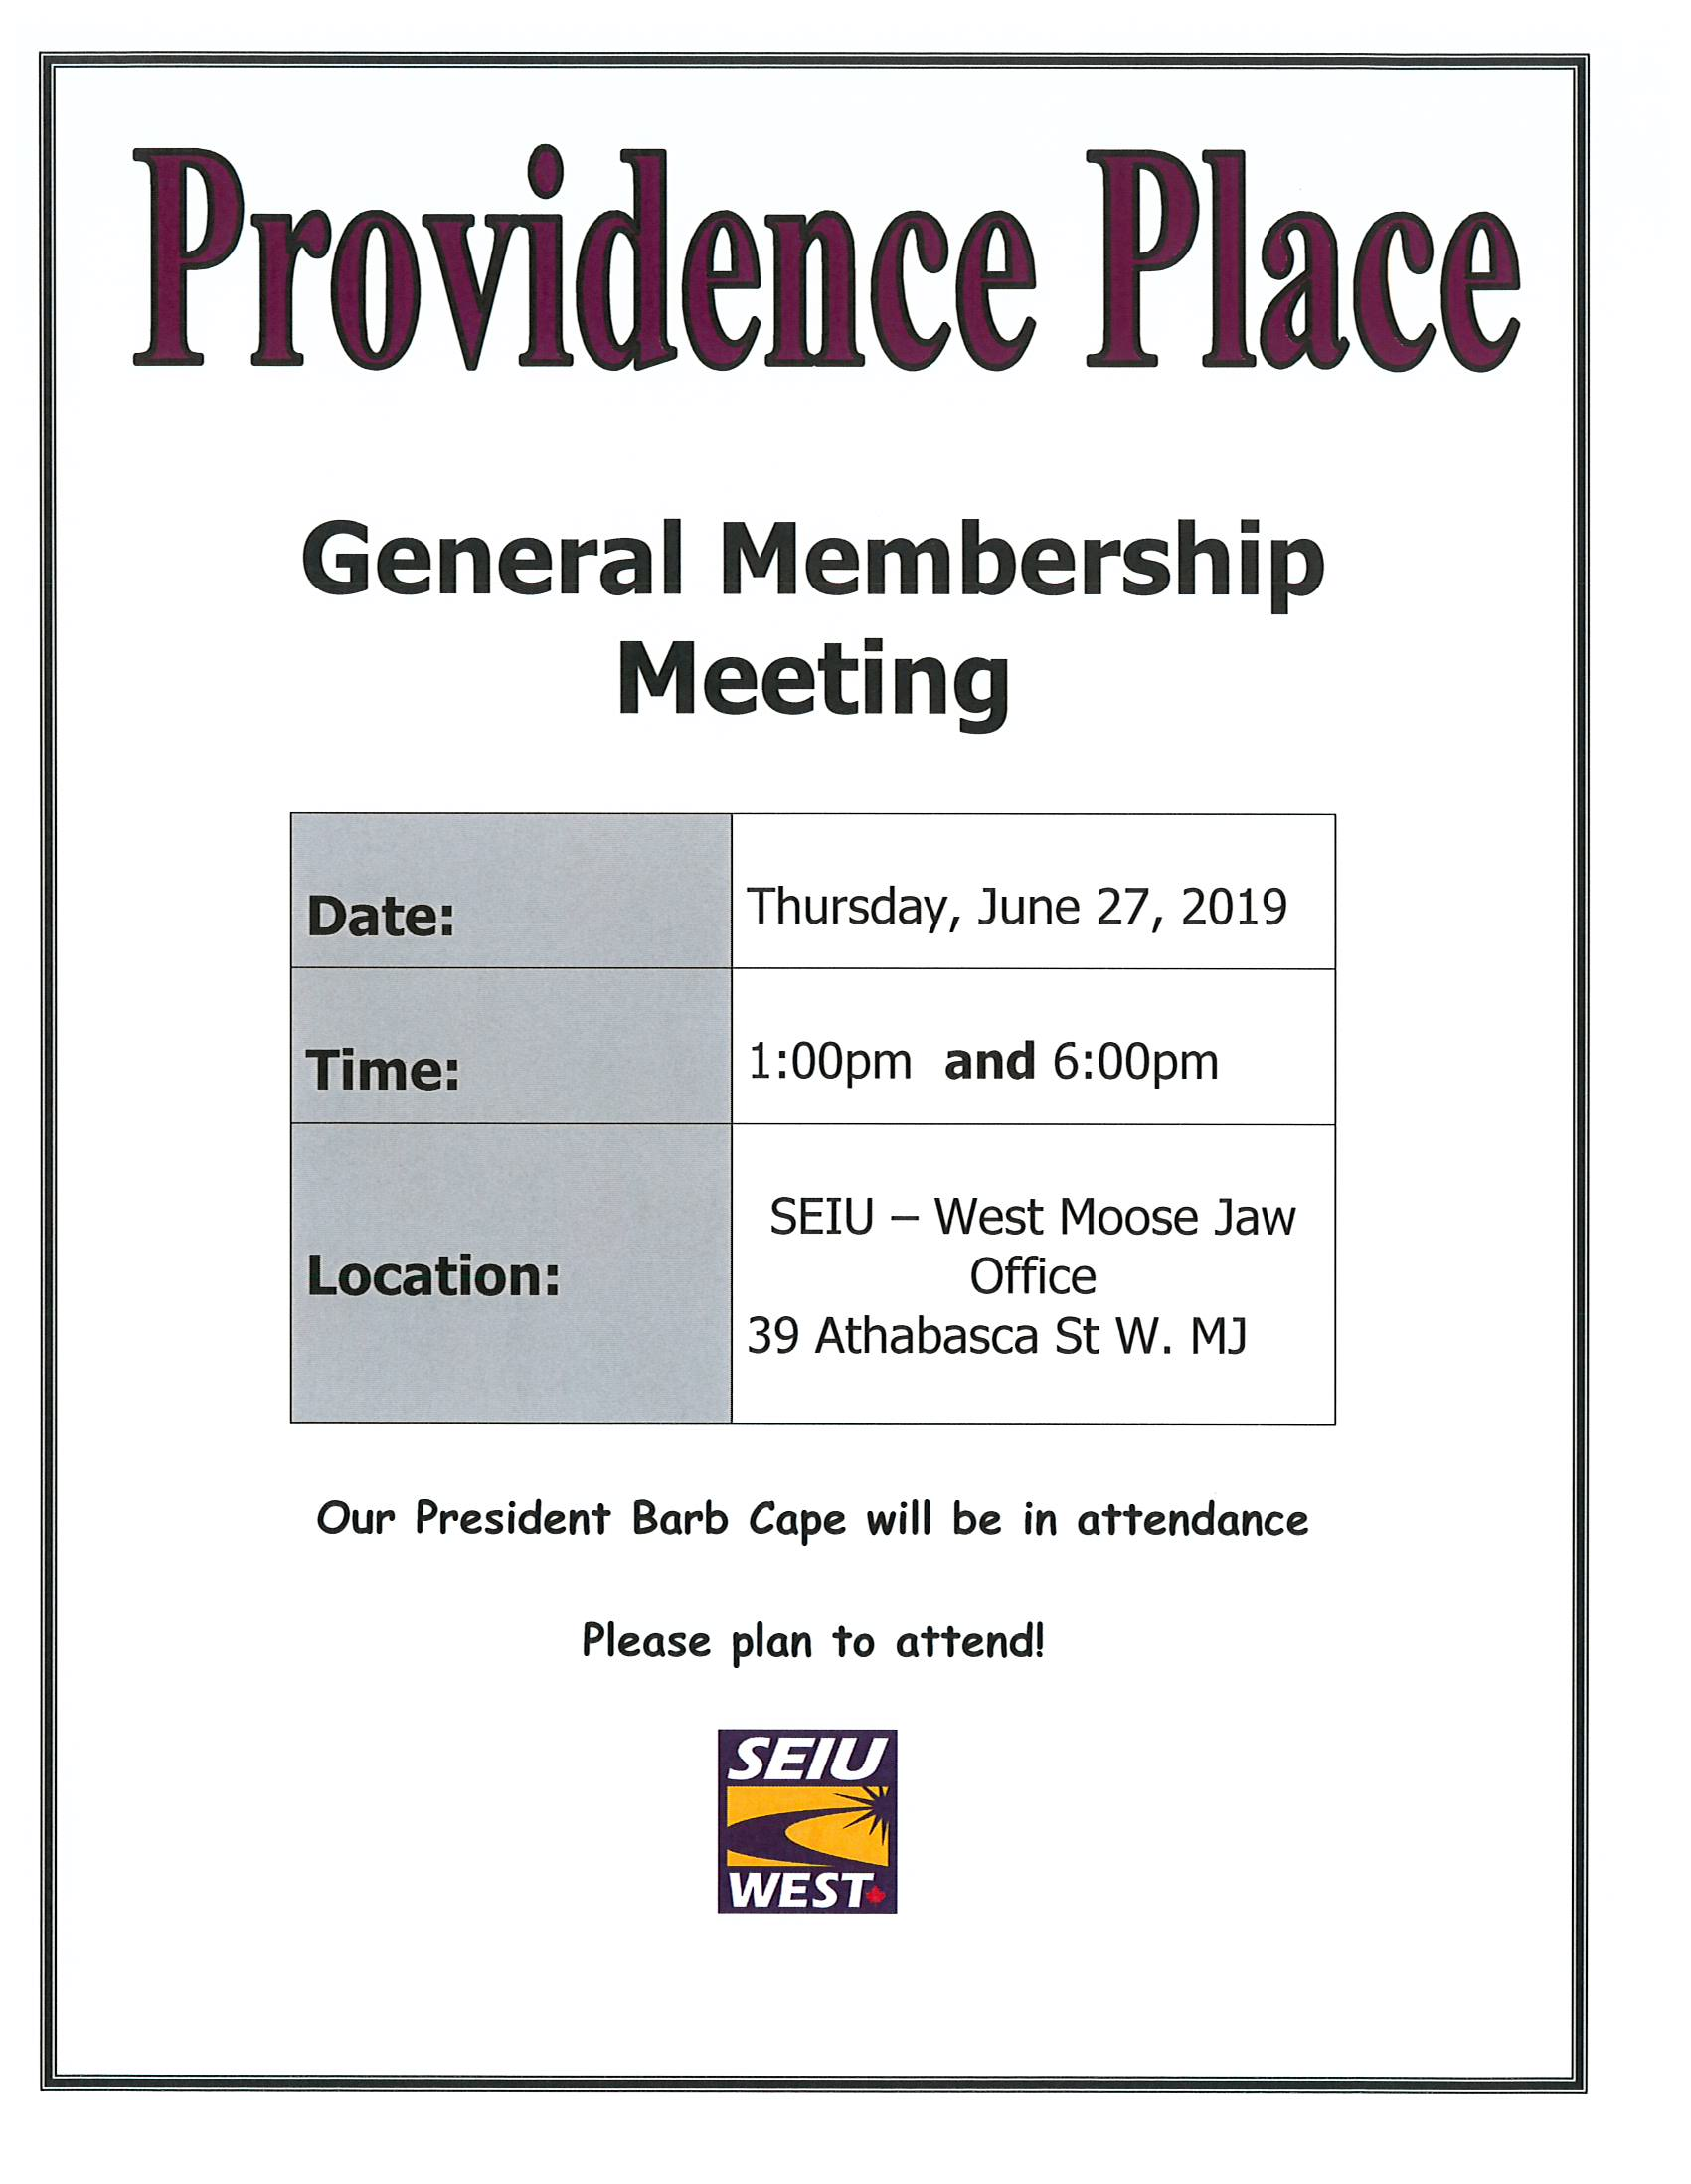 Unit Meeting Poster - Providence Place